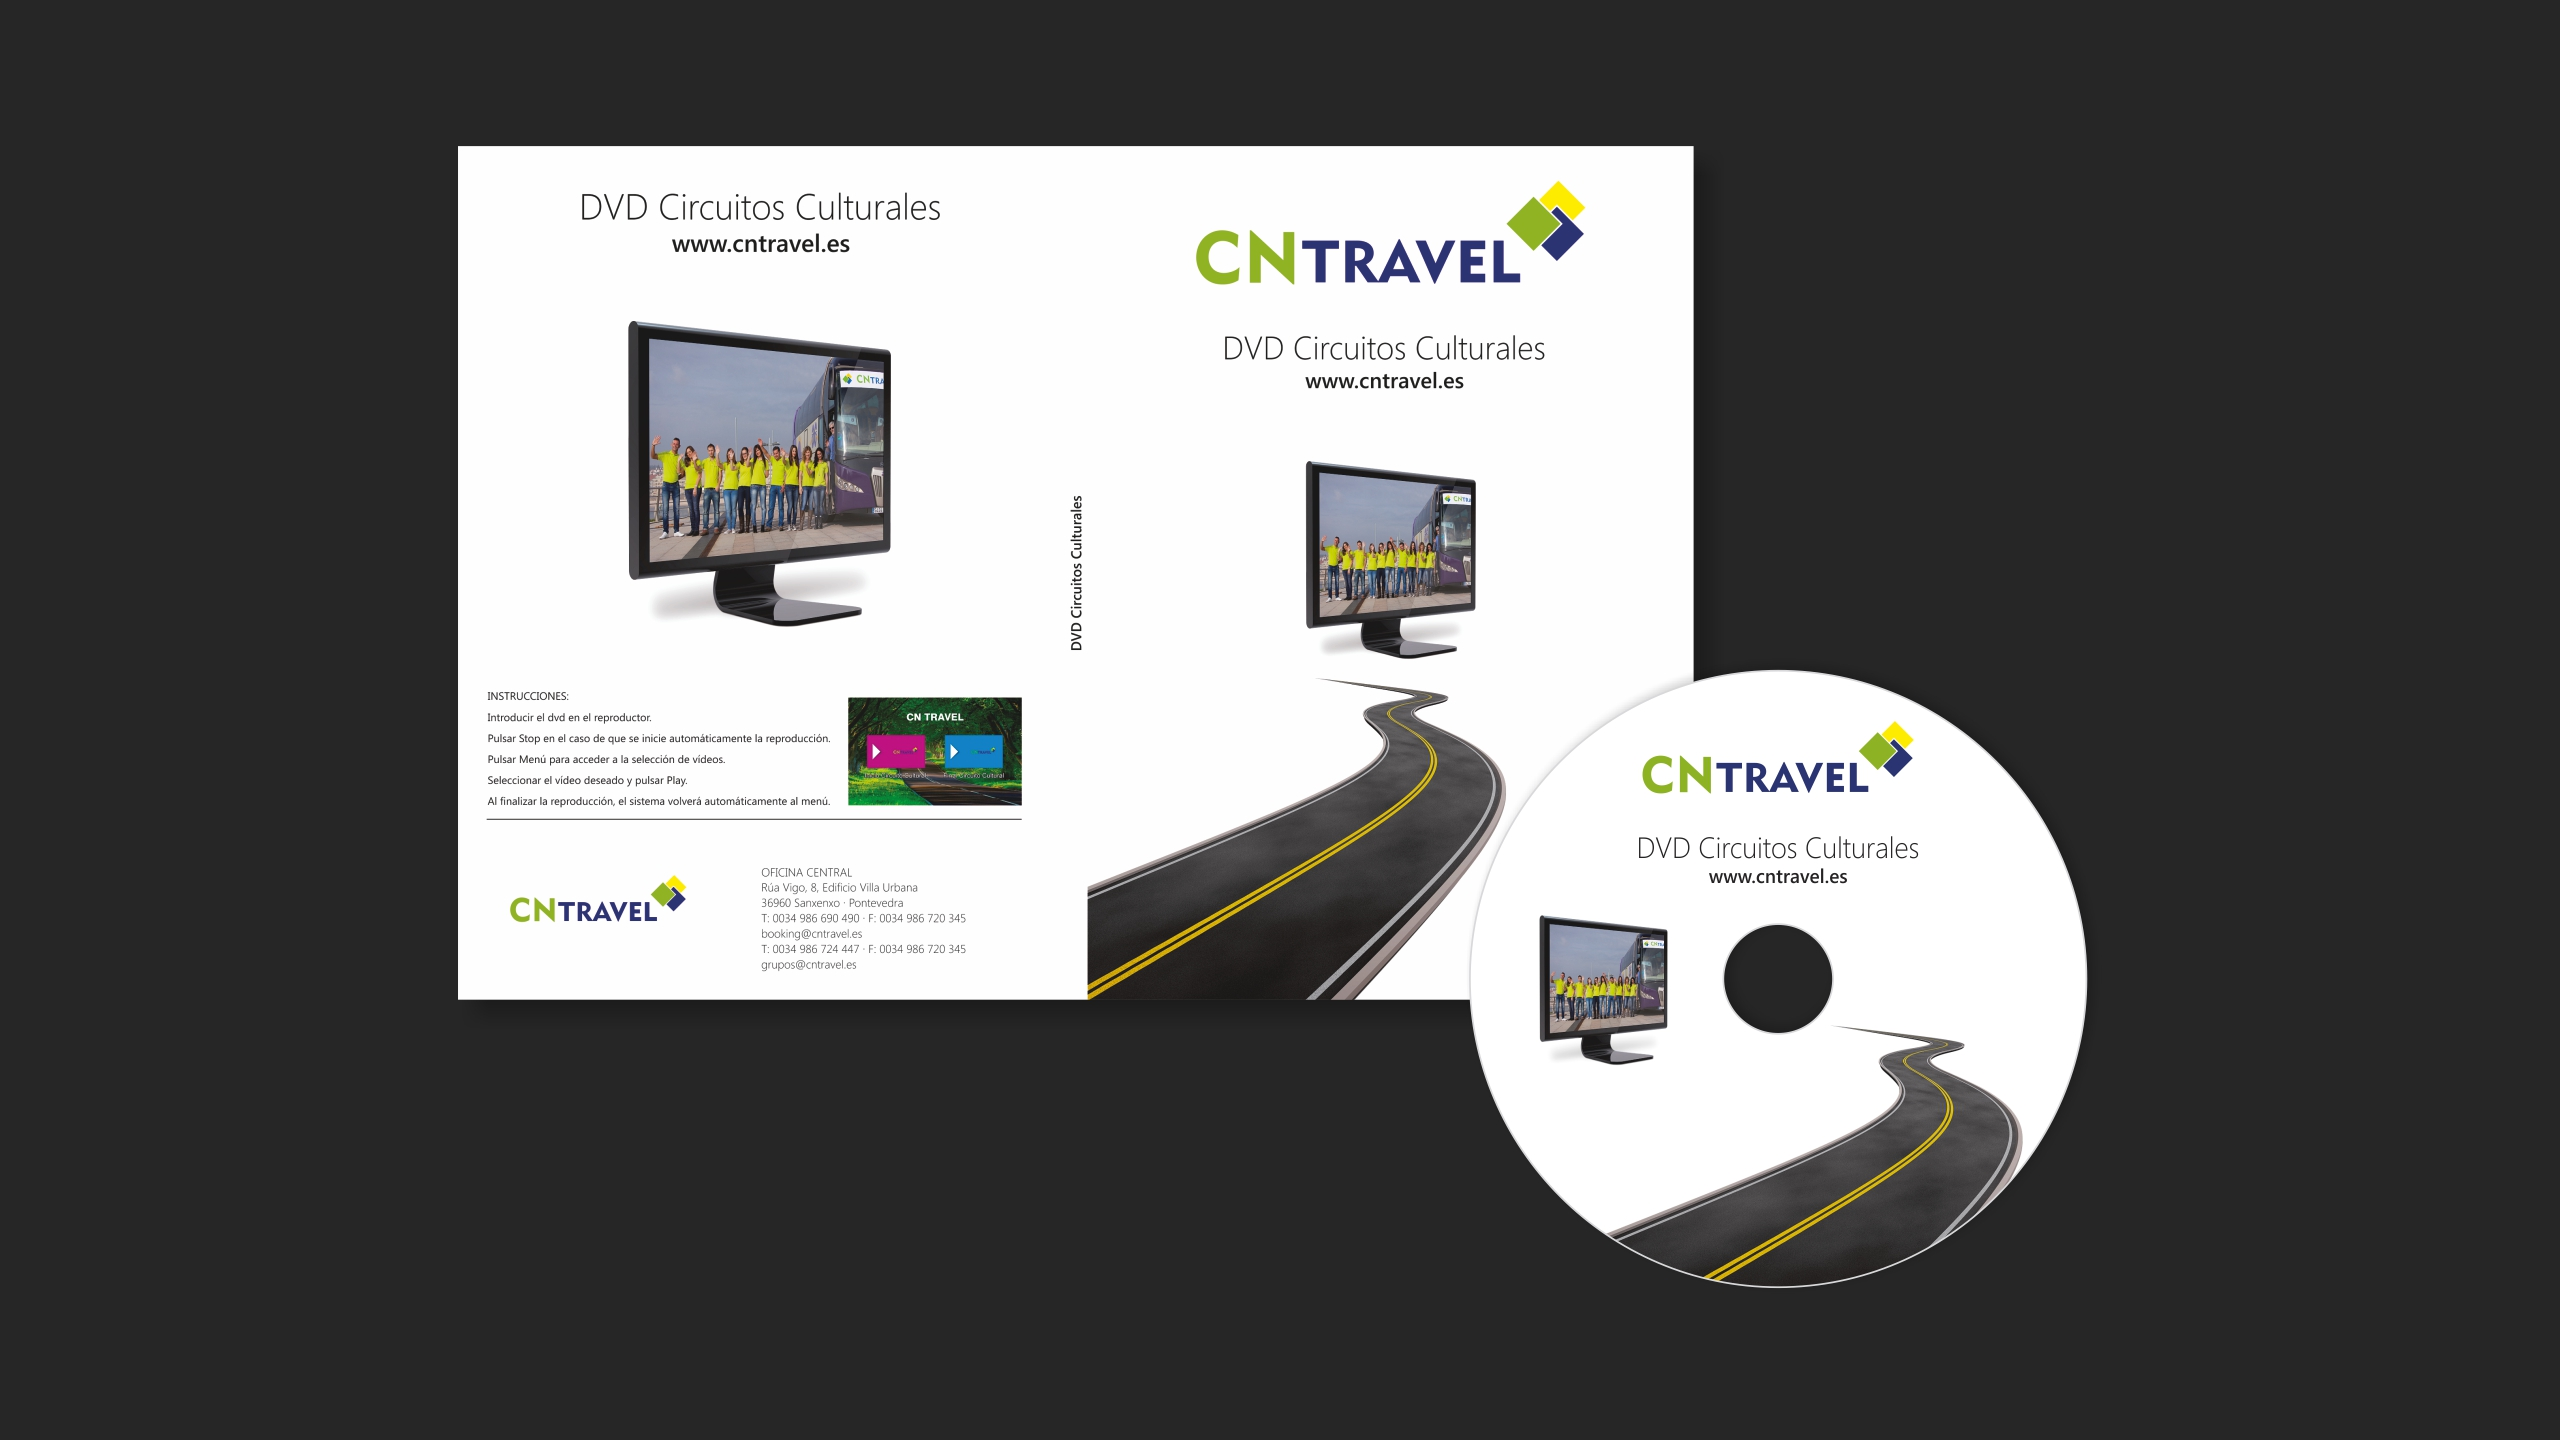 Diseño CN Travel dvd